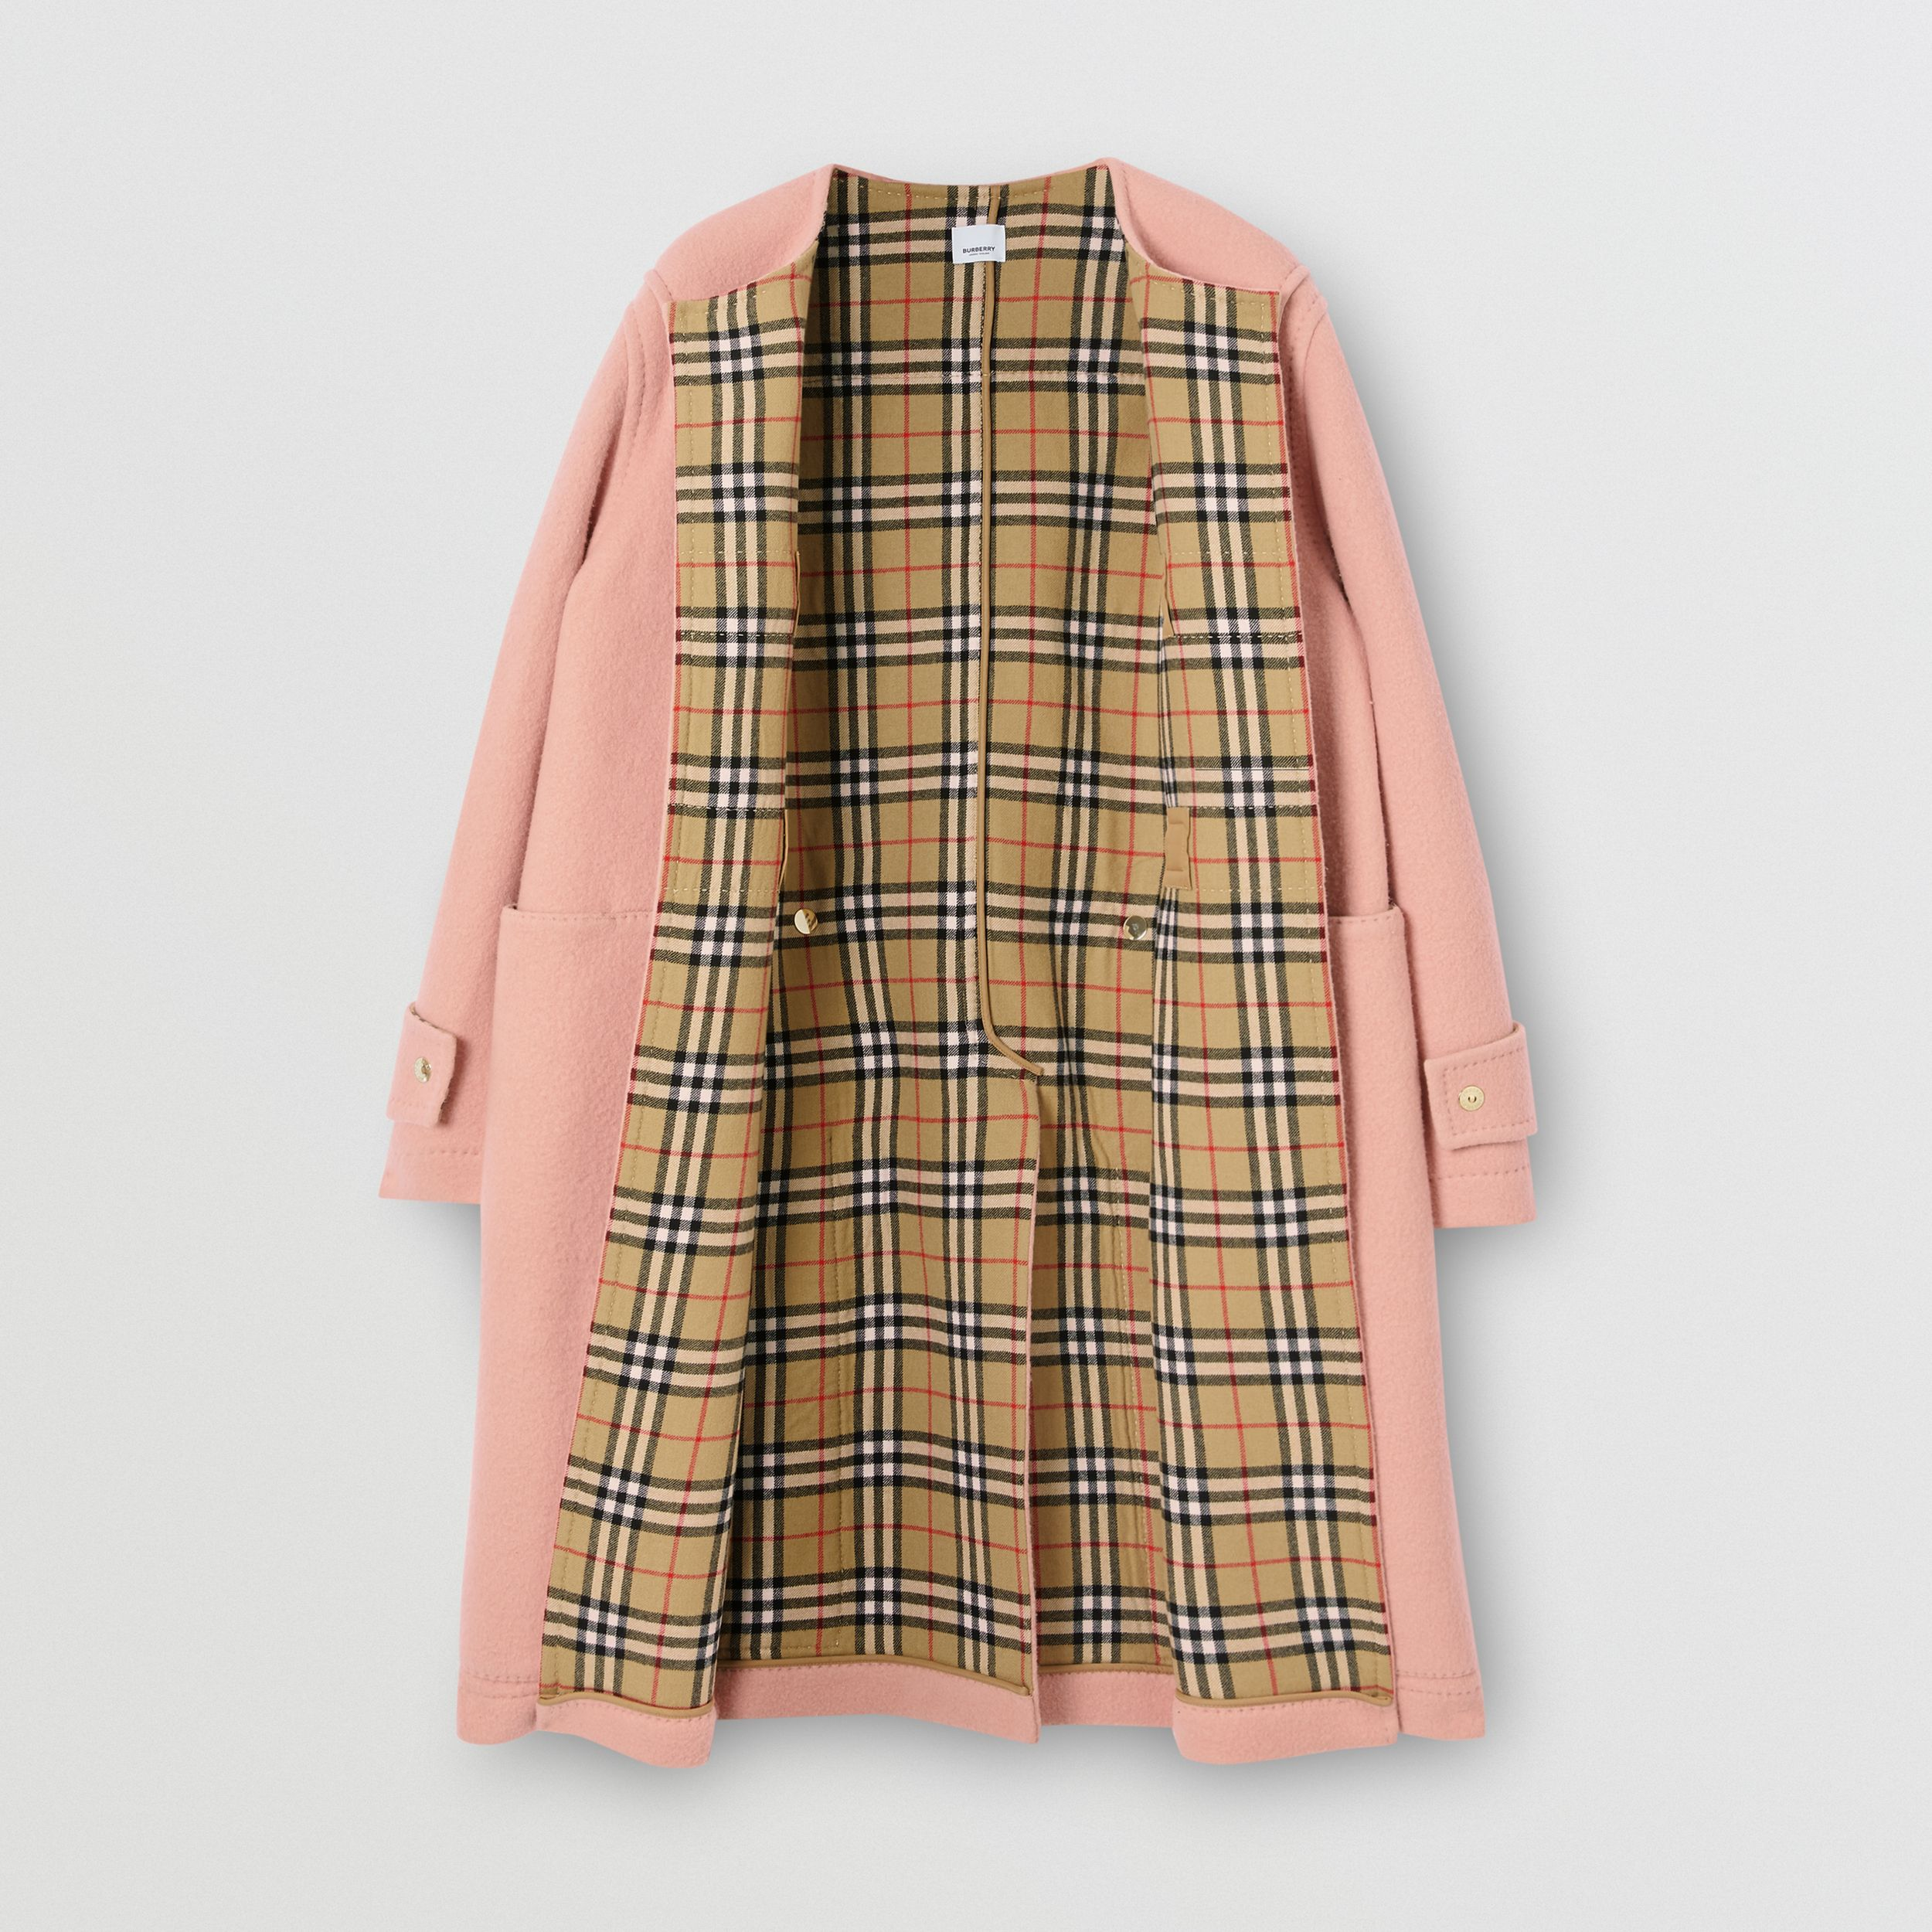 Vintage Check-lined Felted Wool Duffle Coat in Dusty Pink | Burberry - 4